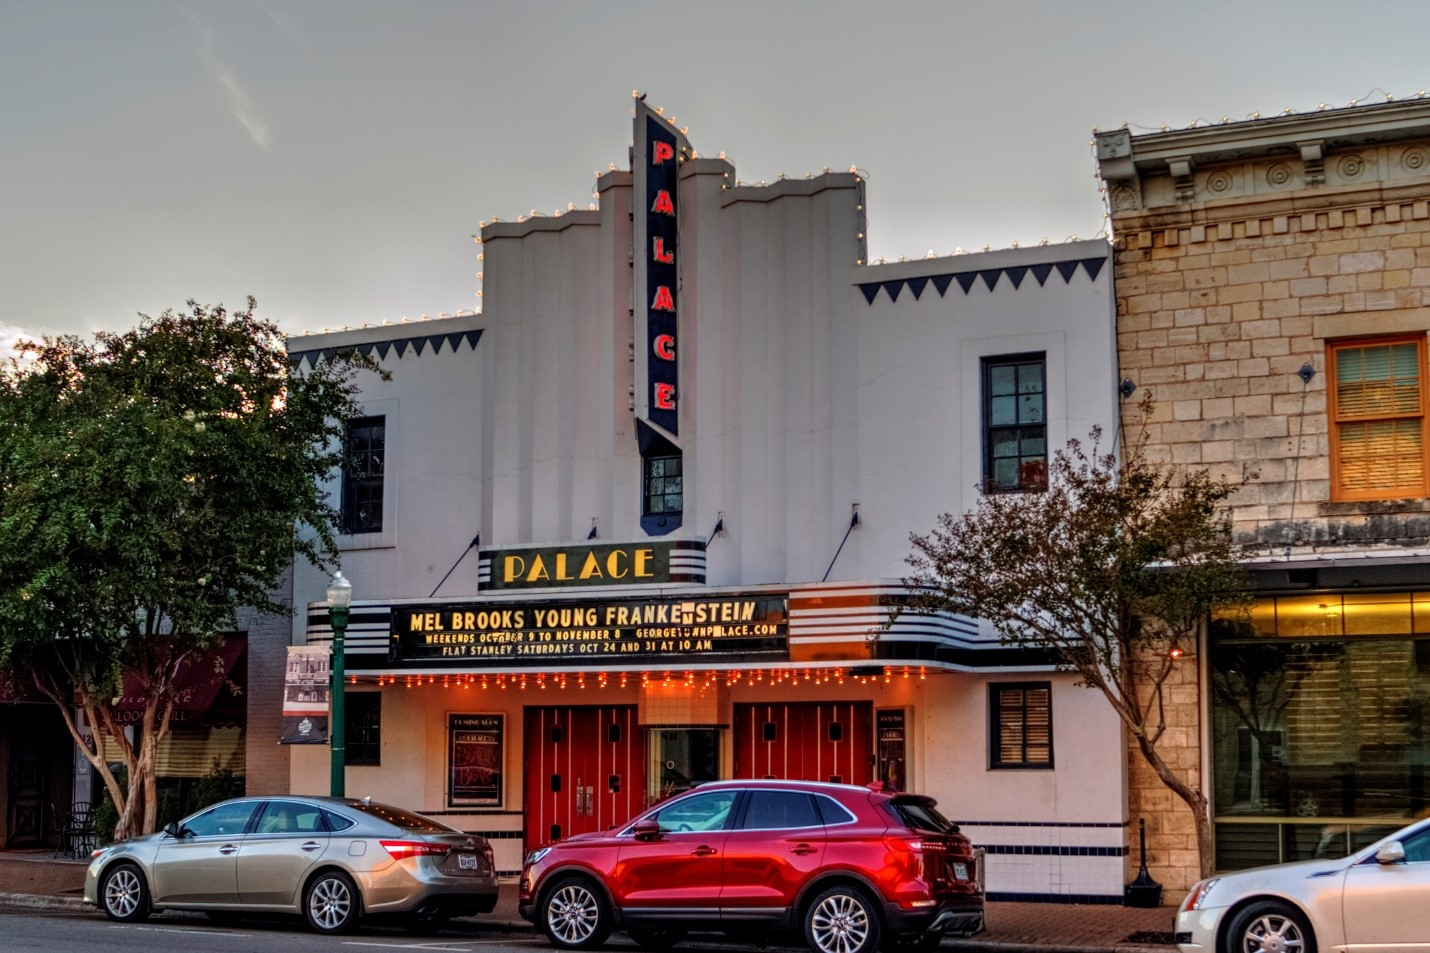 Top 10 things to do in georgetown texas for Georgetown movie theater